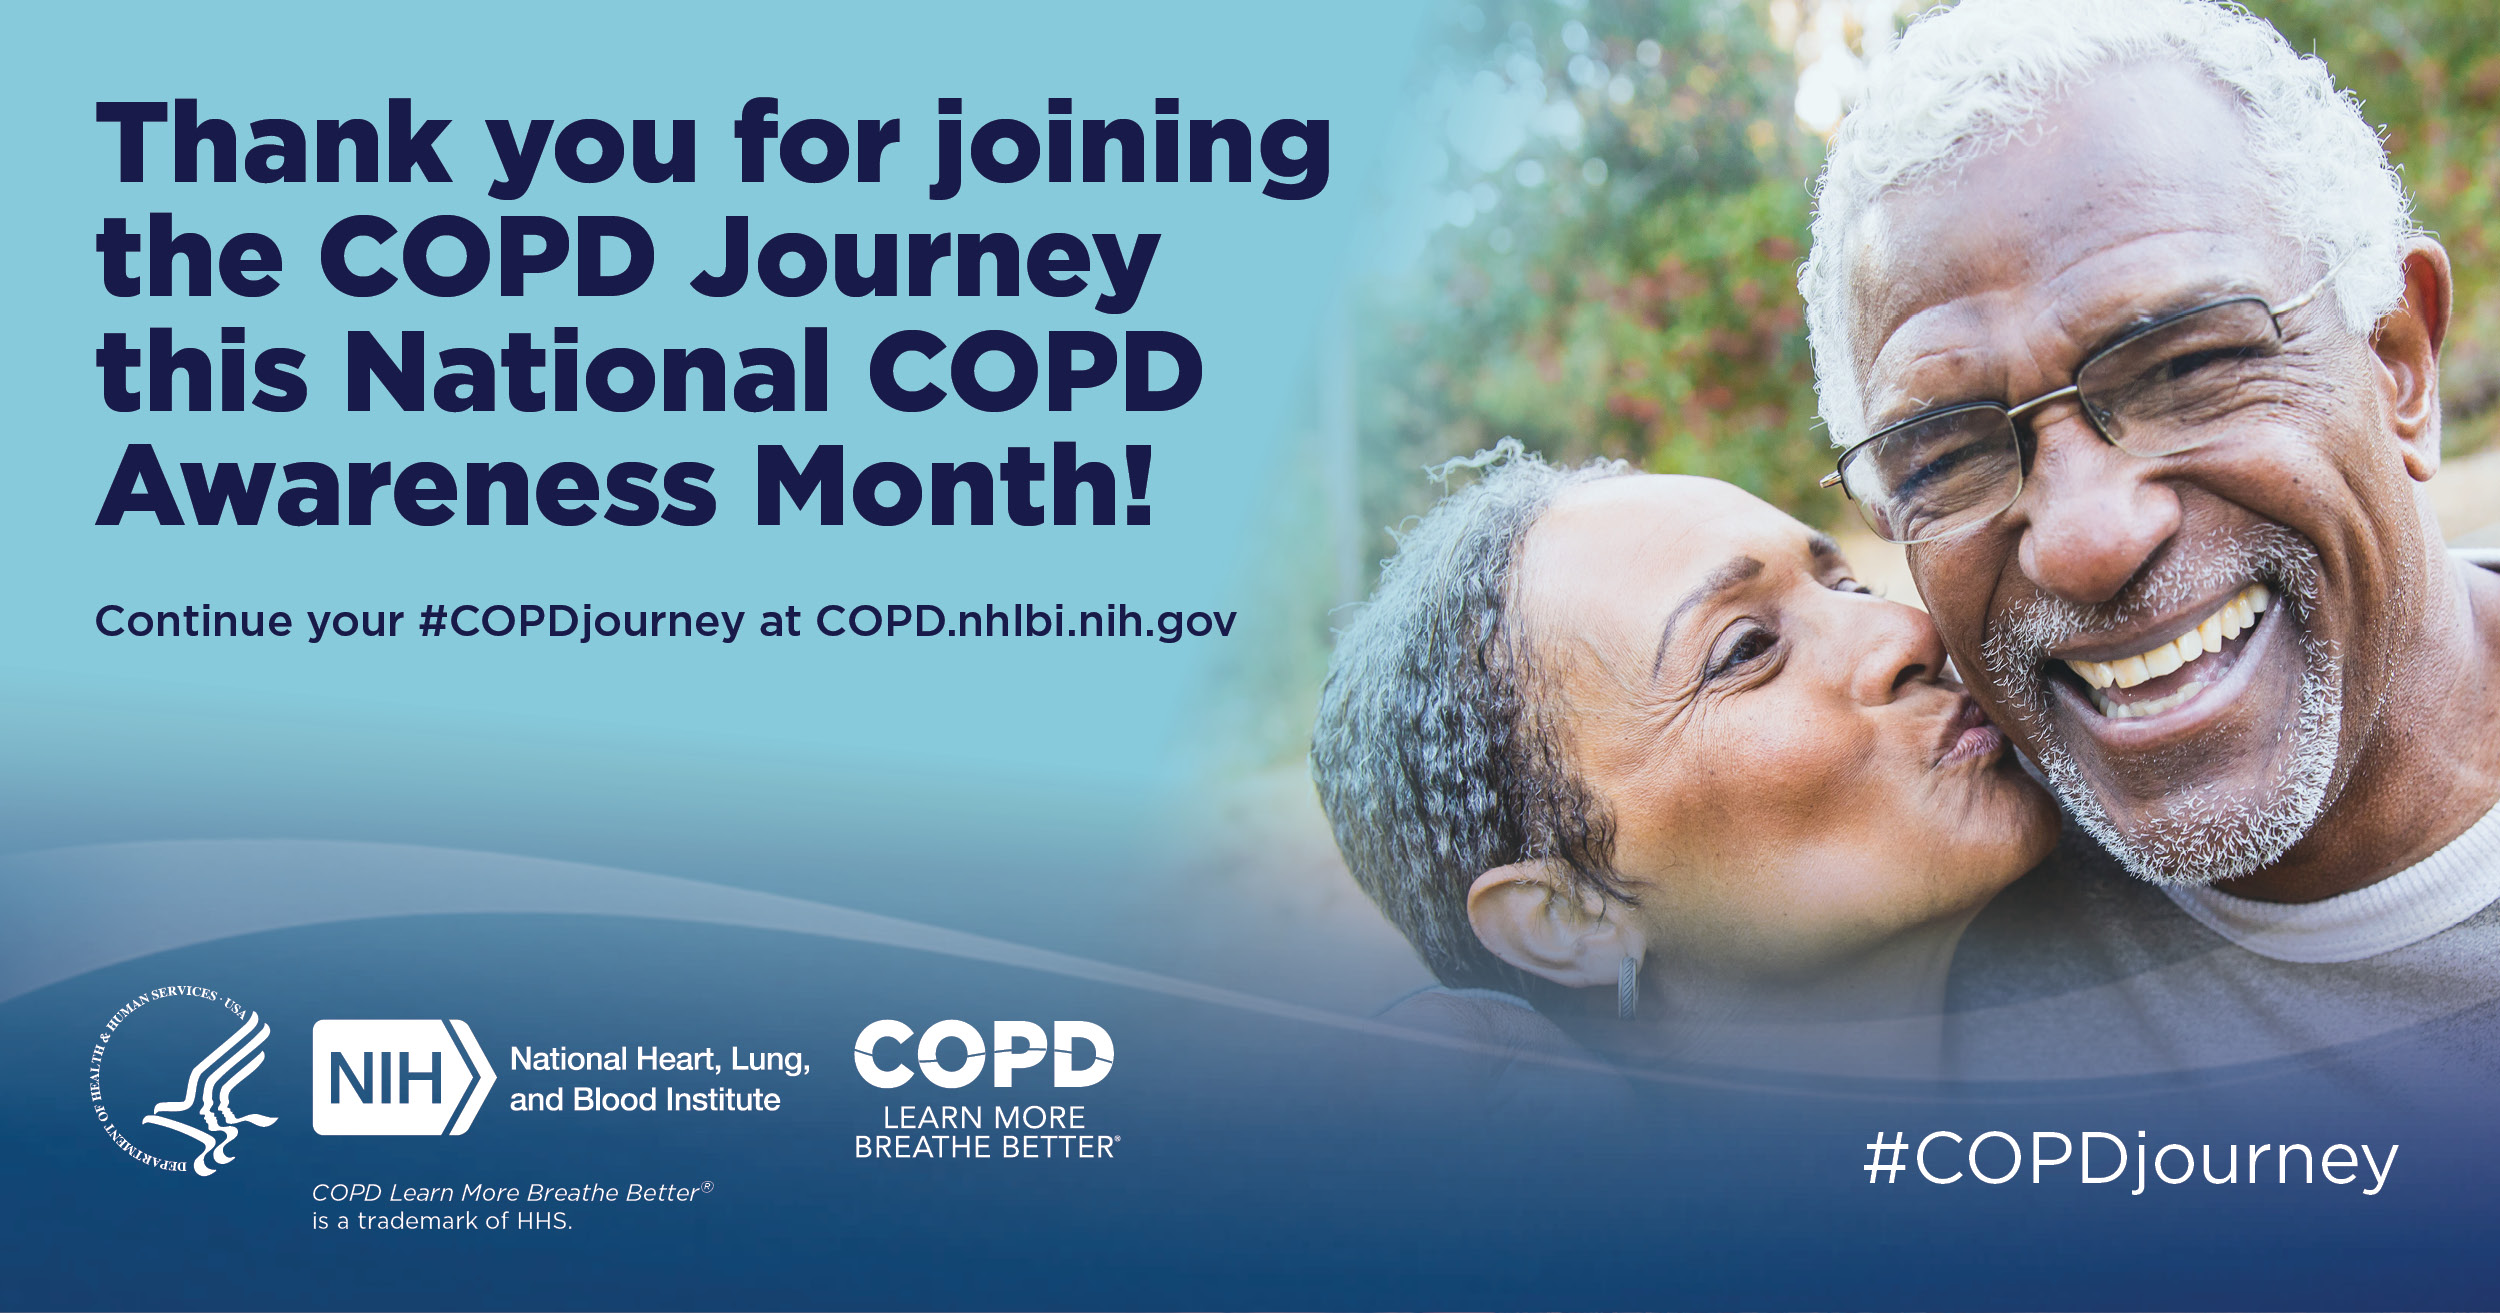 Image with text thanking people for joining National COPD Awareness Month.